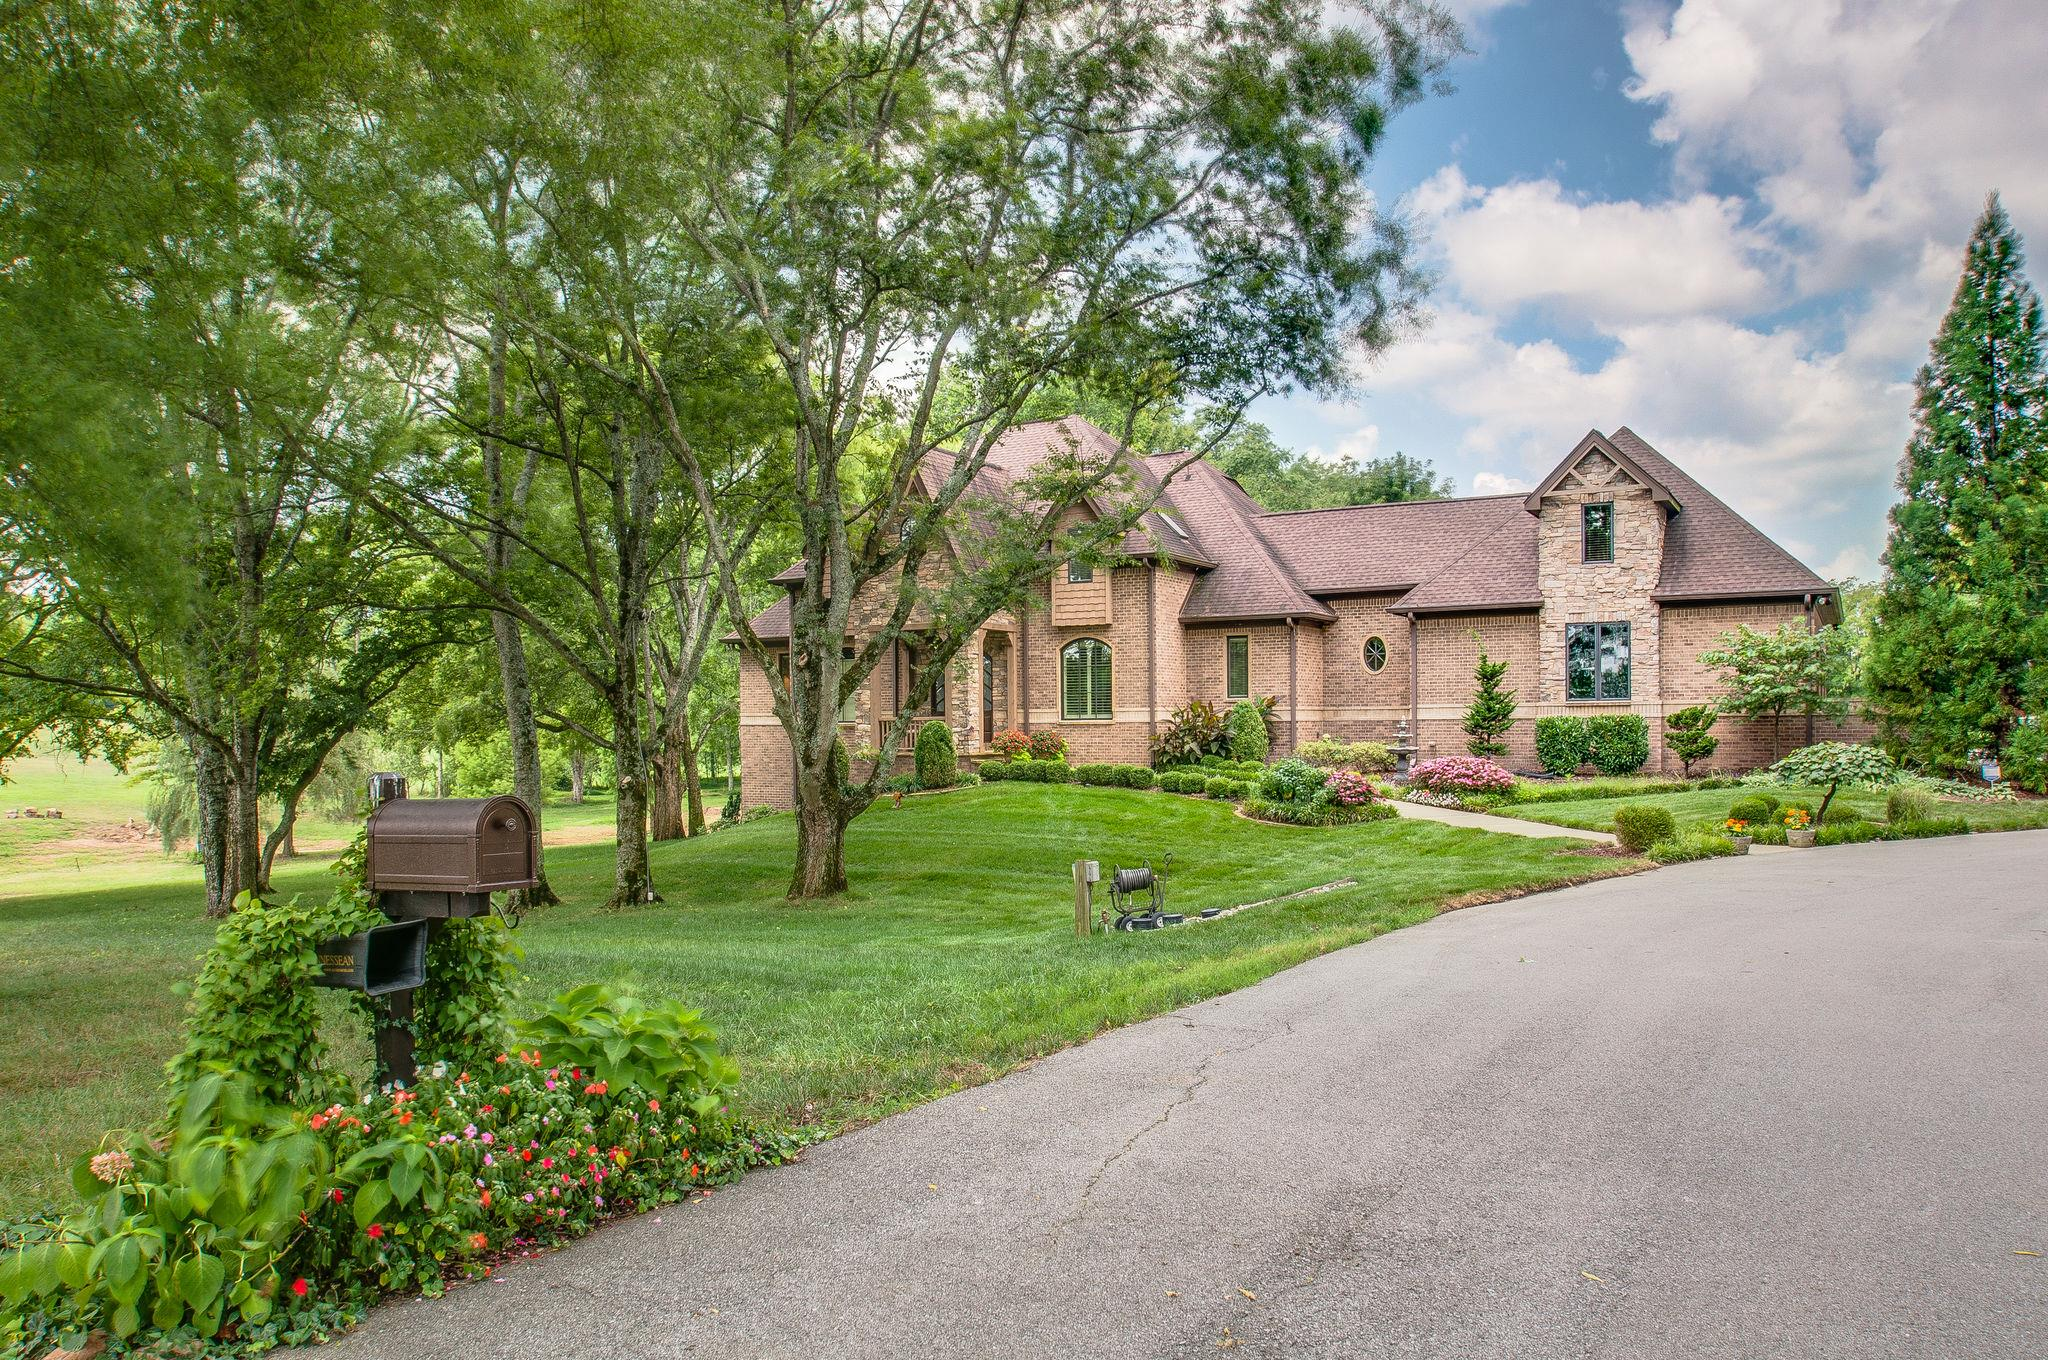 2797 Buckner Ln, Thompsons Station, TN 37179 - Thompsons Station, TN real estate listing